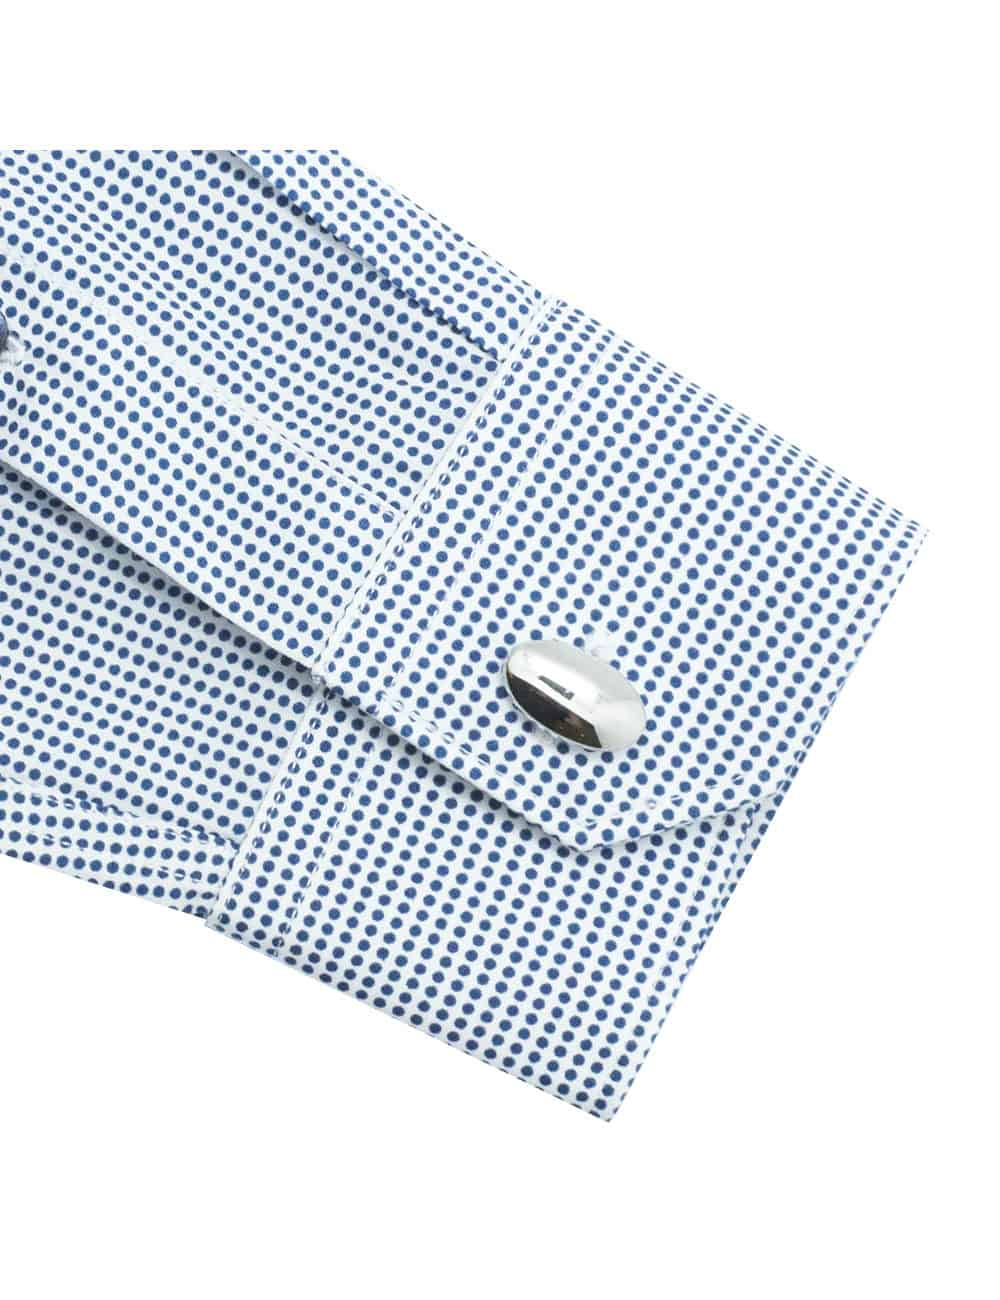 Tailored Fit White with Navy Polka Dots Long Sleeve Shirt TF2A12.17